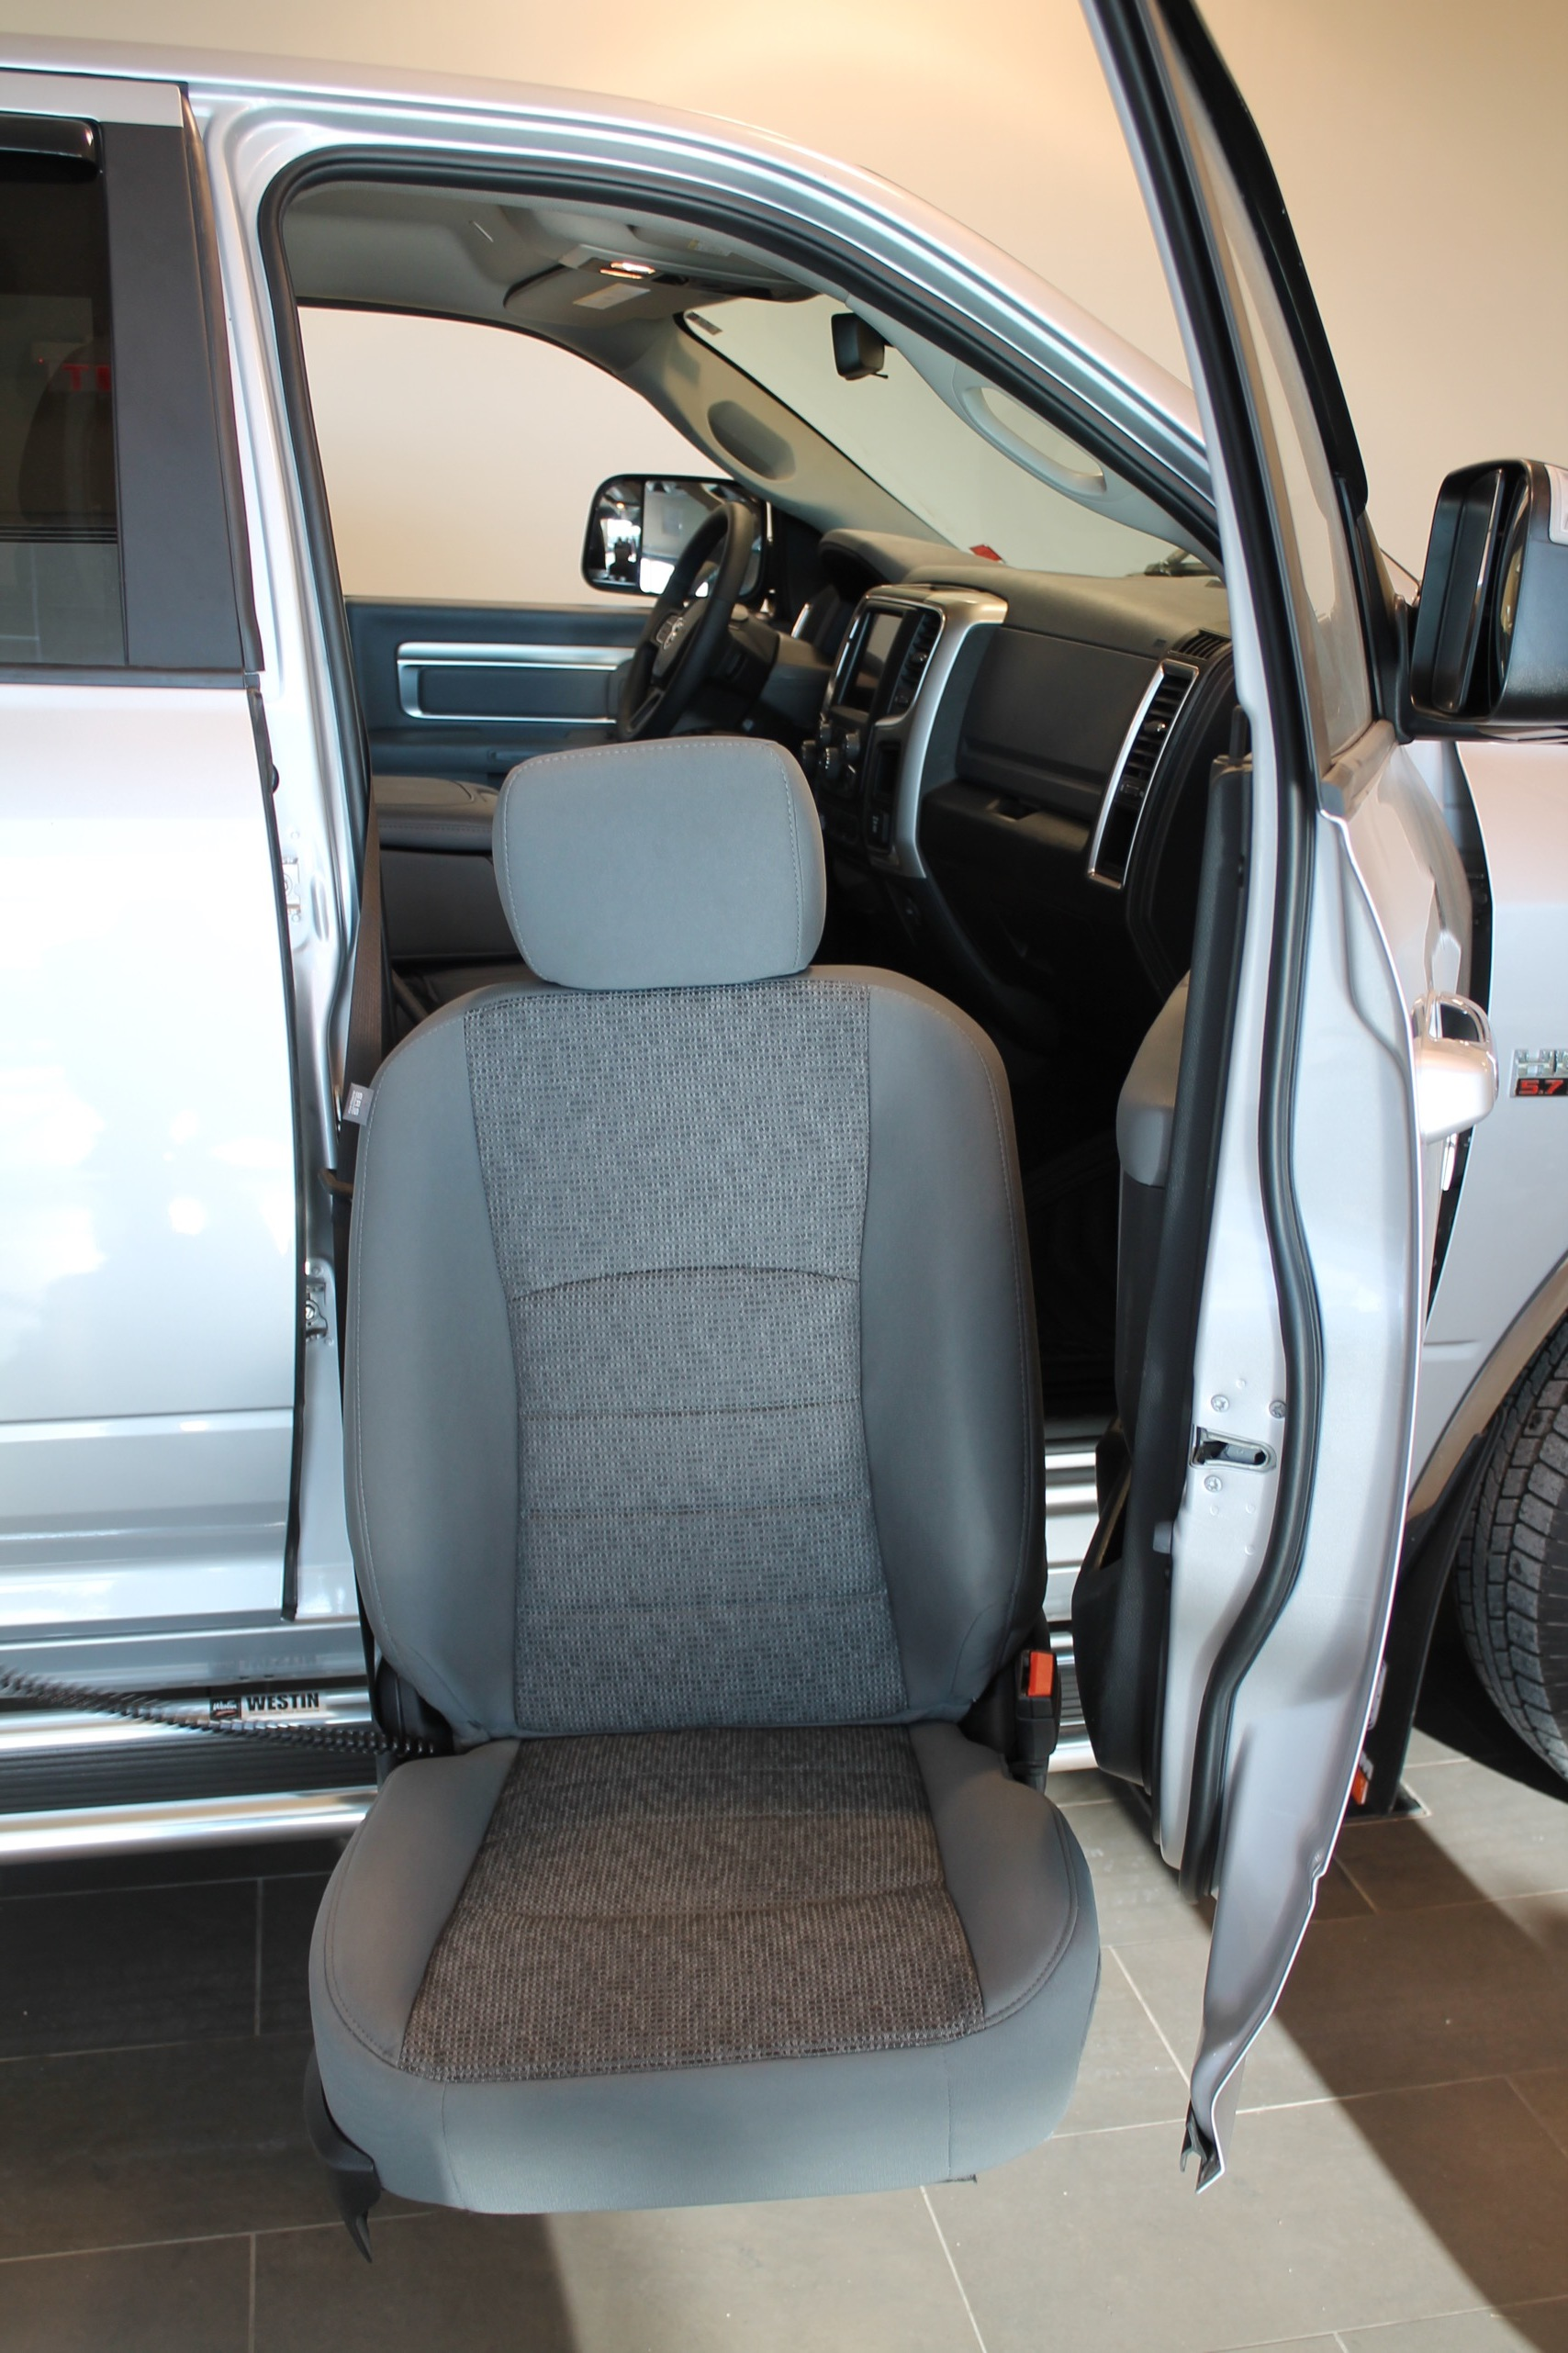 2018-malley-mobility-turney-seat_005.JPG